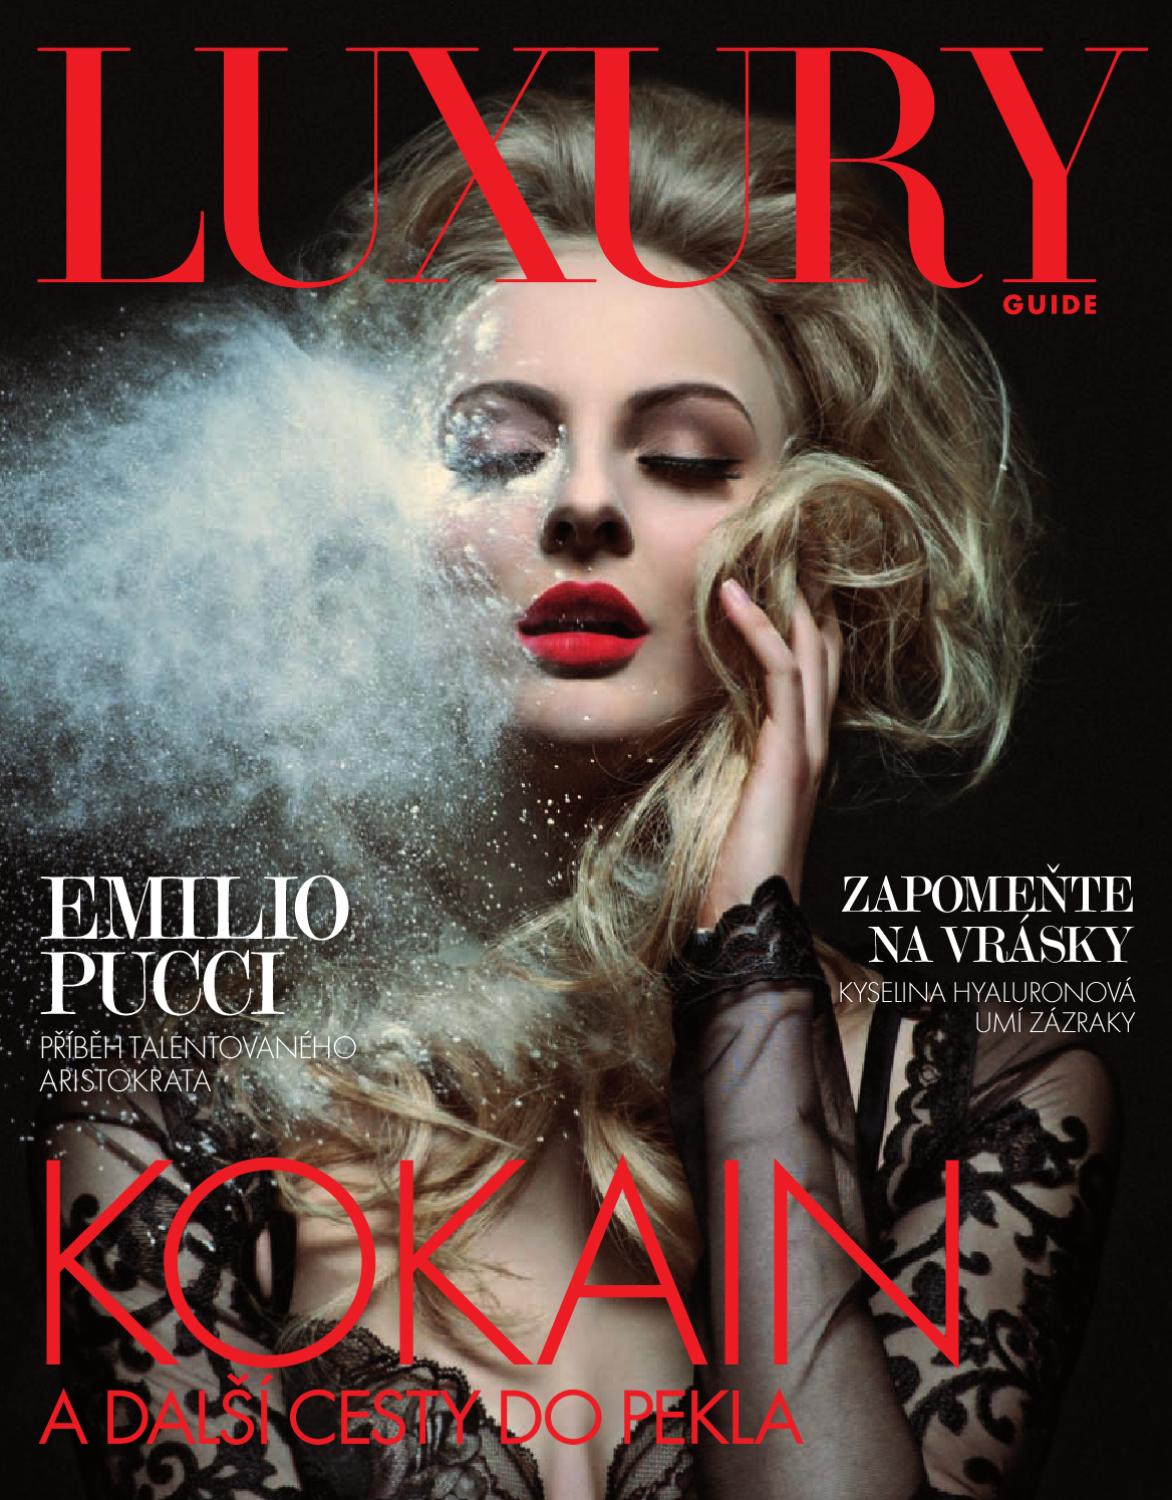 Luxury Guide 03 2012 complete by TomDesign - issuu 75c81e1a3f